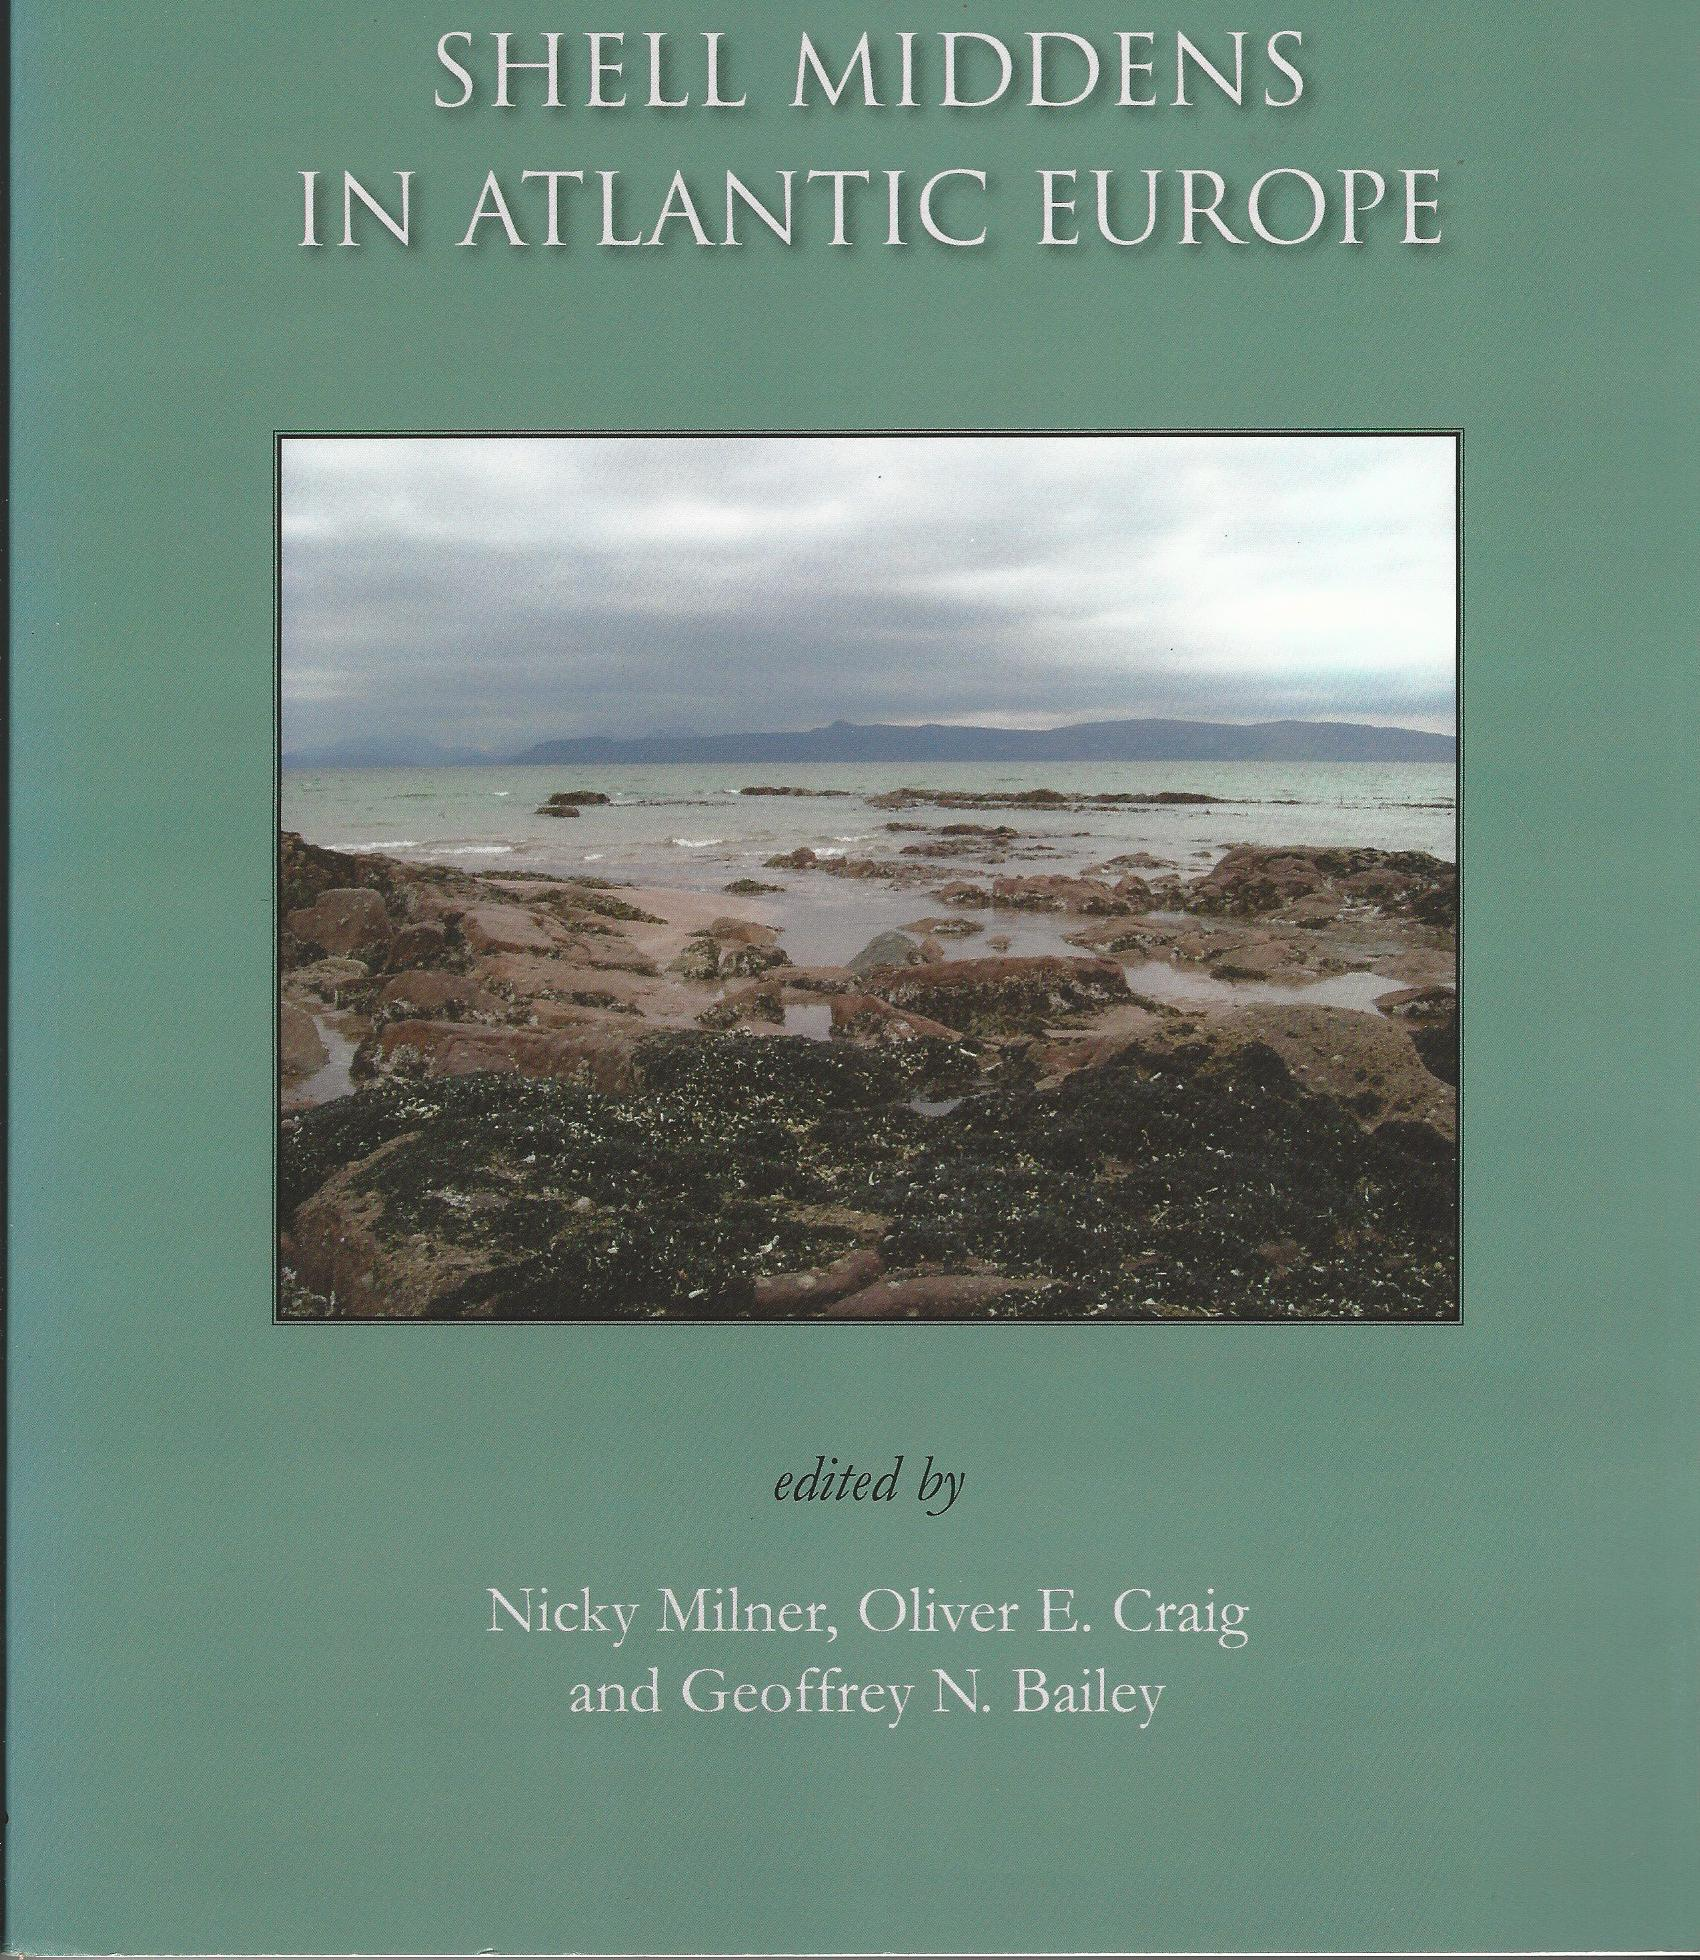 Image for Shell Middens in Atlantic Europe.